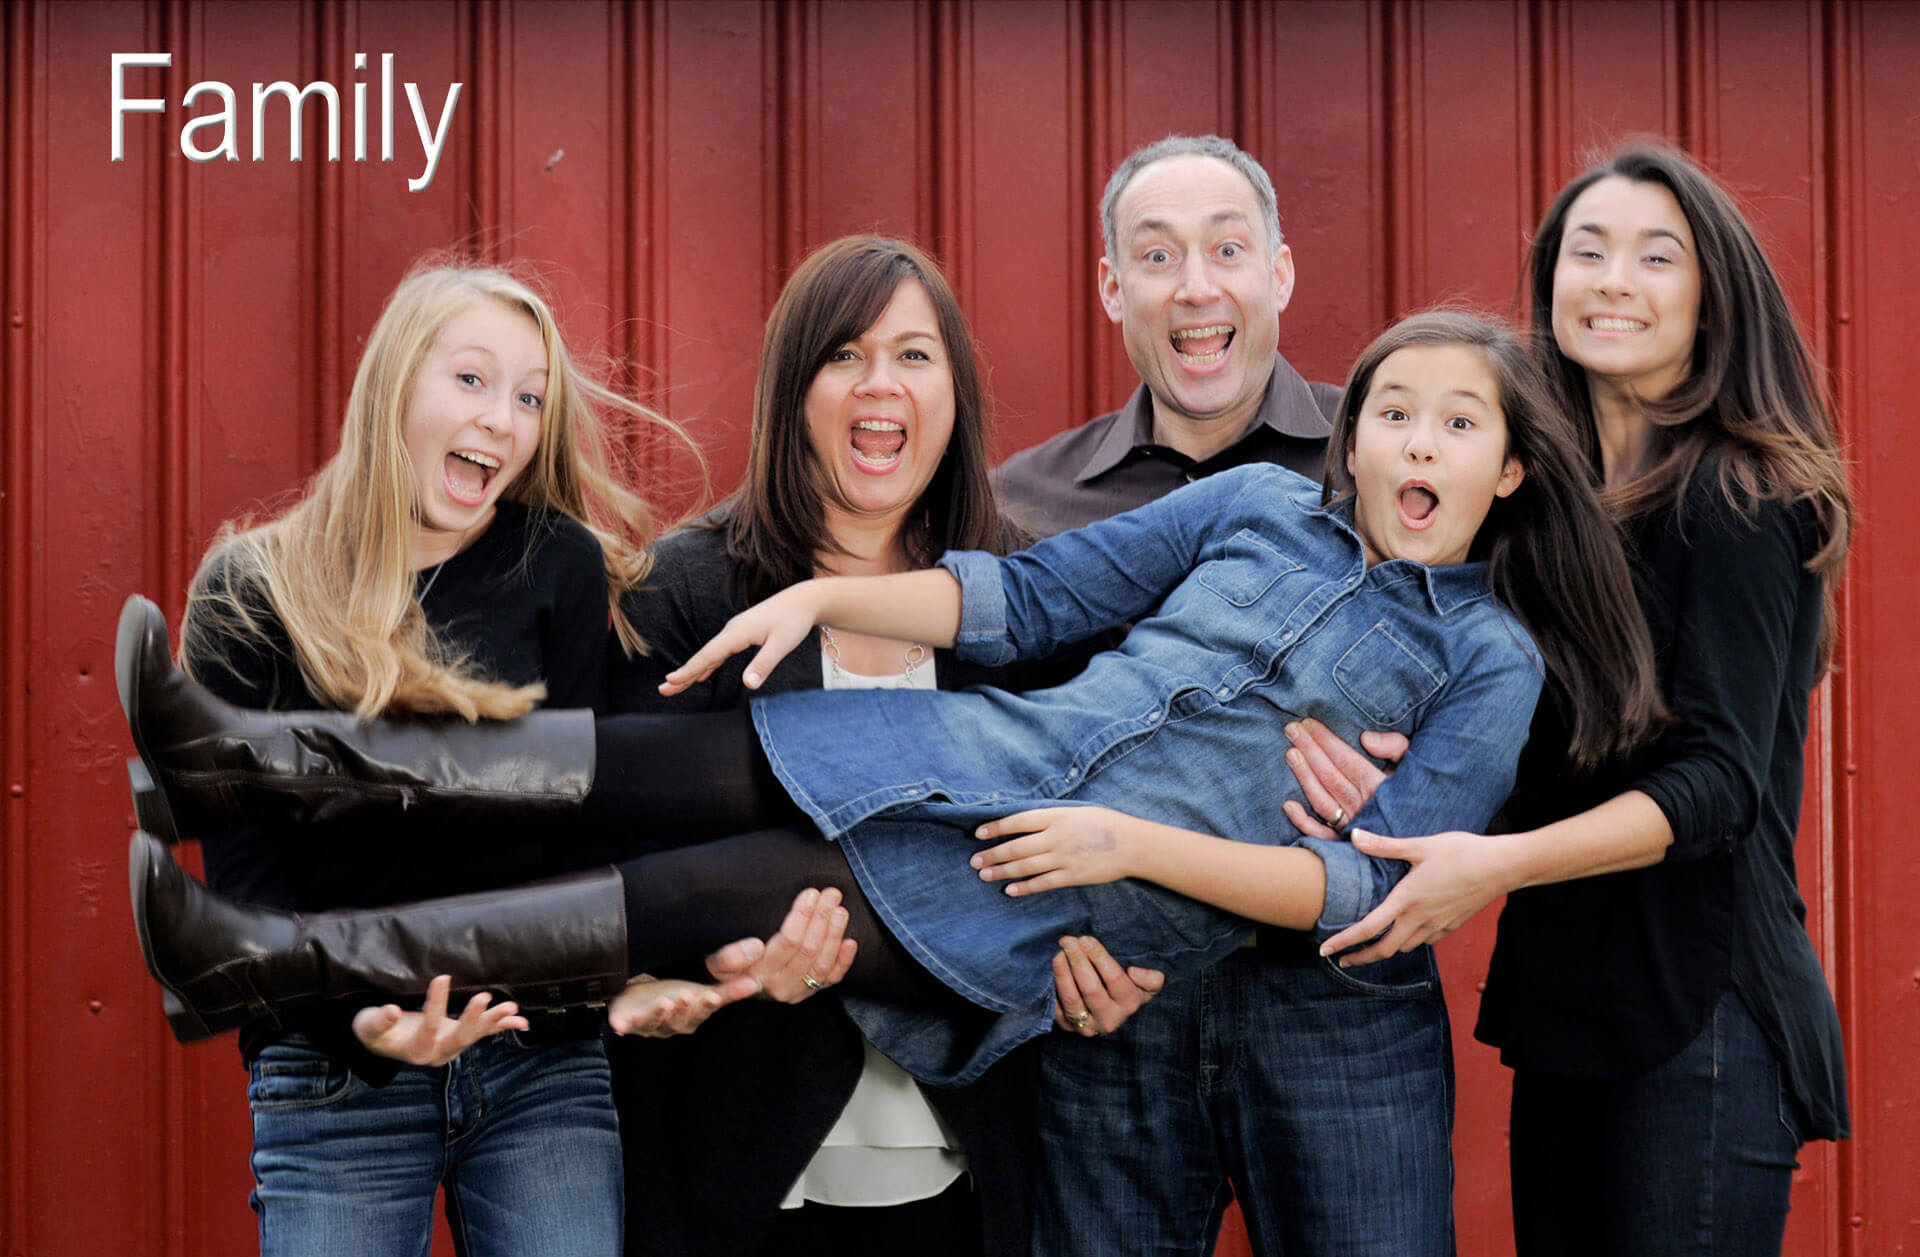 In a fun family photo, one family member is left out of this Detroit area family photo using her favorite Michigan photojournalist background to capture fun, family candid photography.